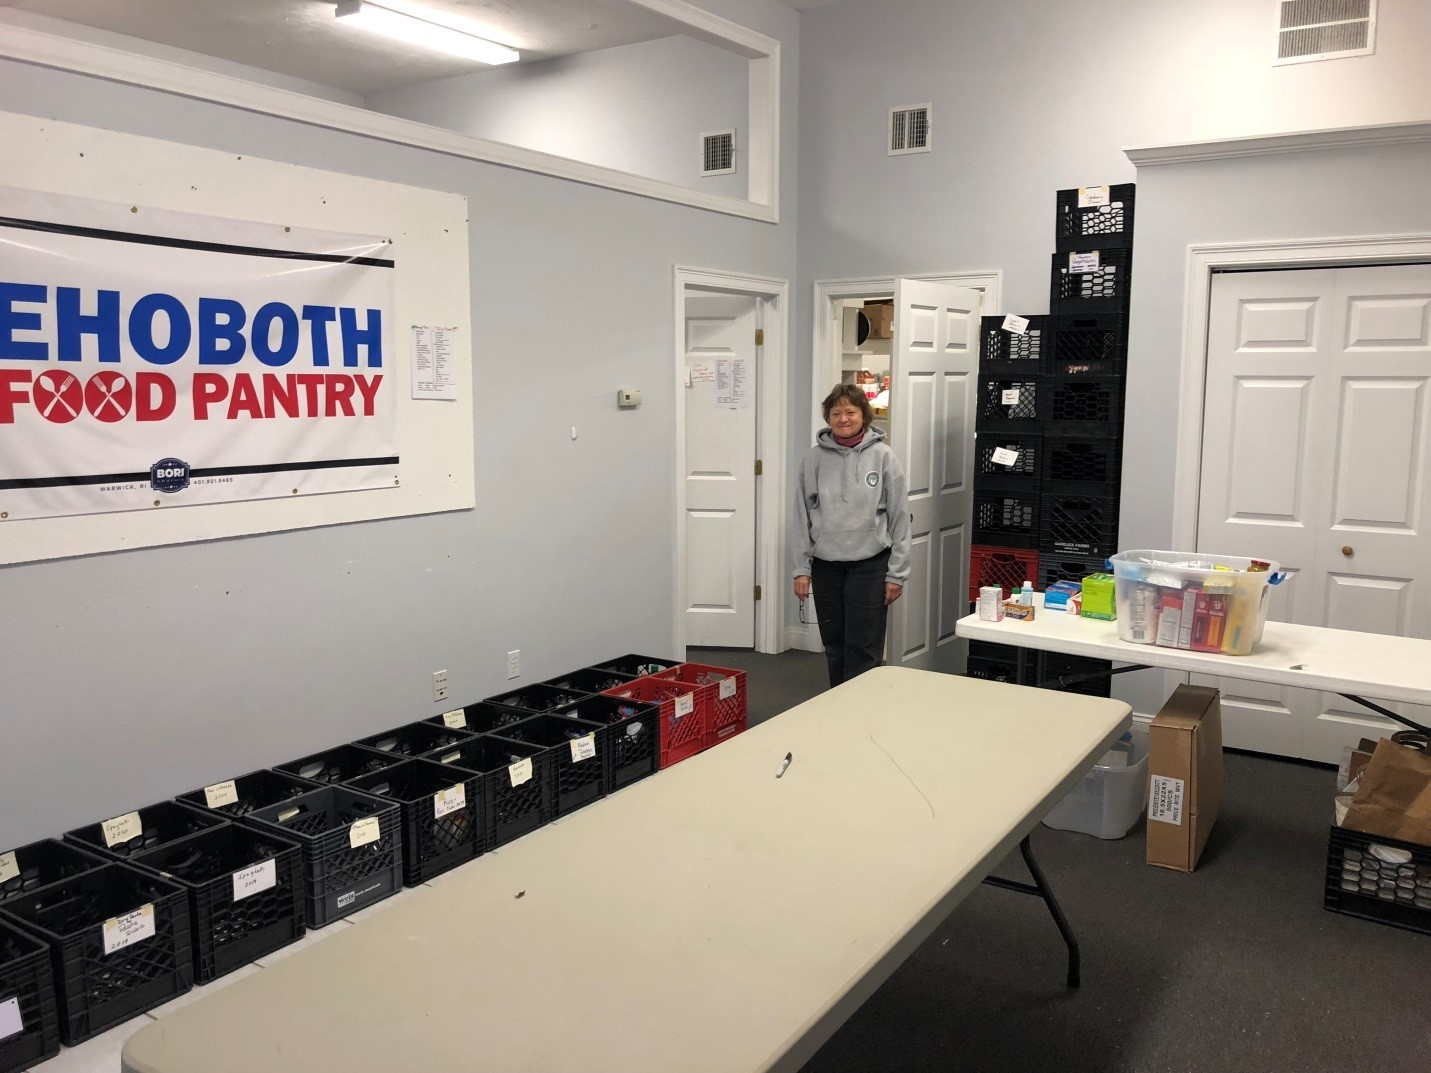 Rehoboth Food Pantry Is Moving Forward Under New Leadership